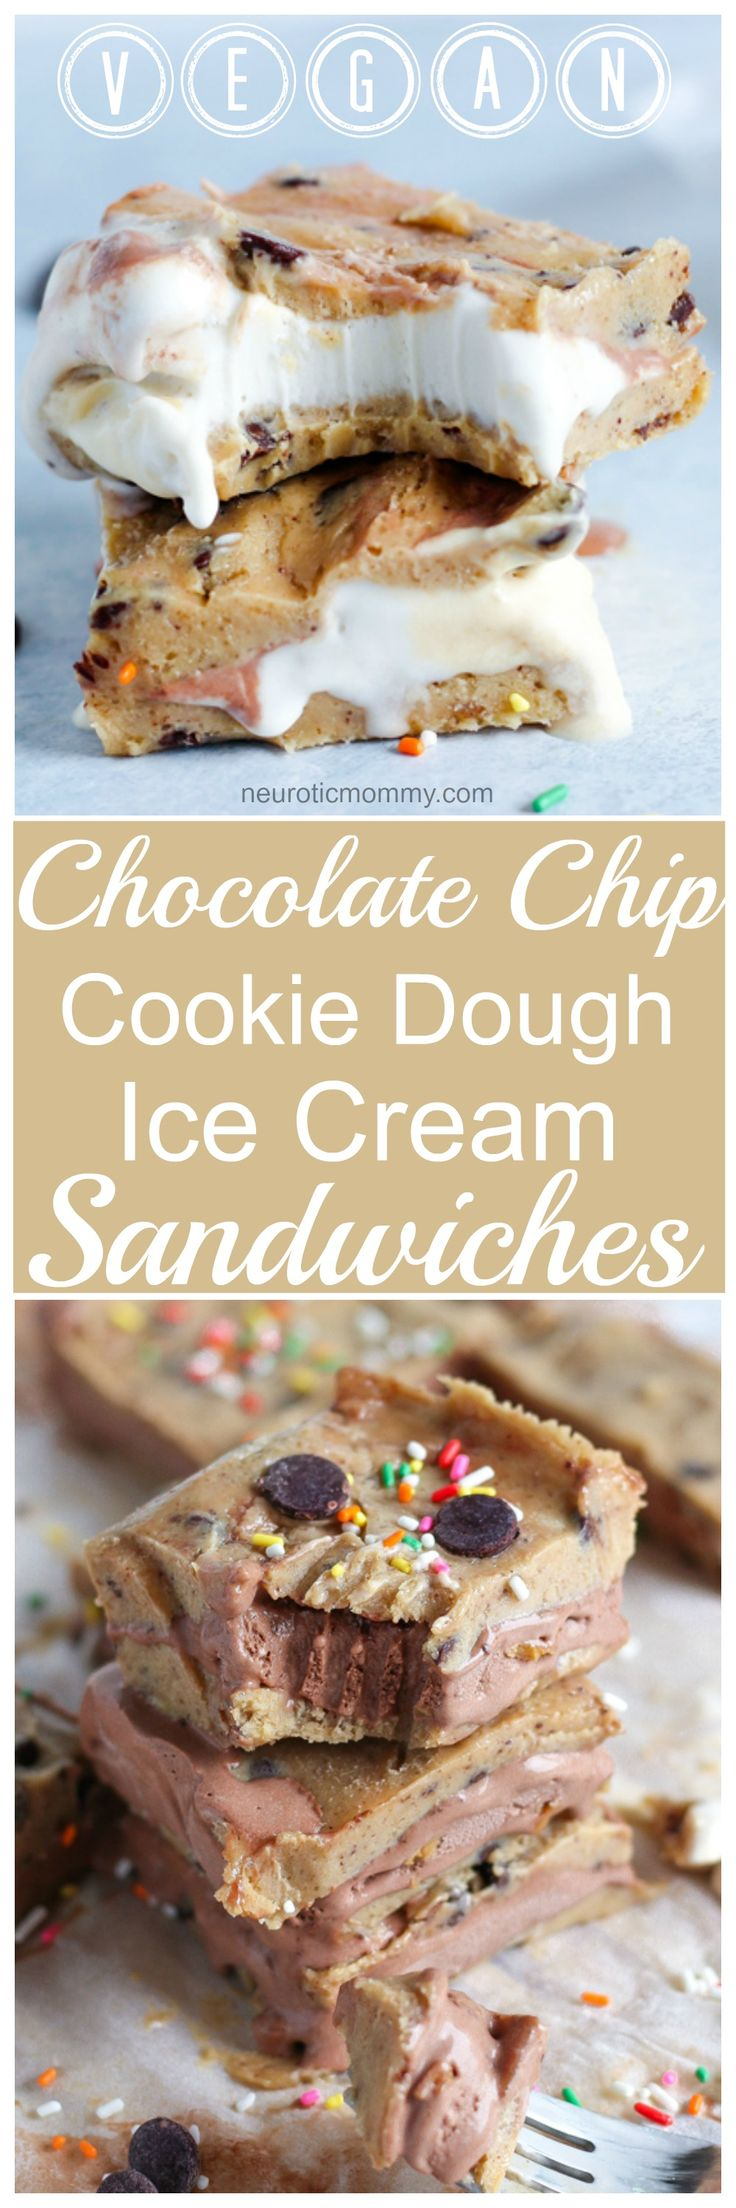 Vegan Chocolate Chip Cookie Dough Ice Cream Sandwiches- The most delicious vegan ice cream bars filled with dairy free rocky road and birthday cake! NeuroticMommy.com #vegan #desserts #snacks